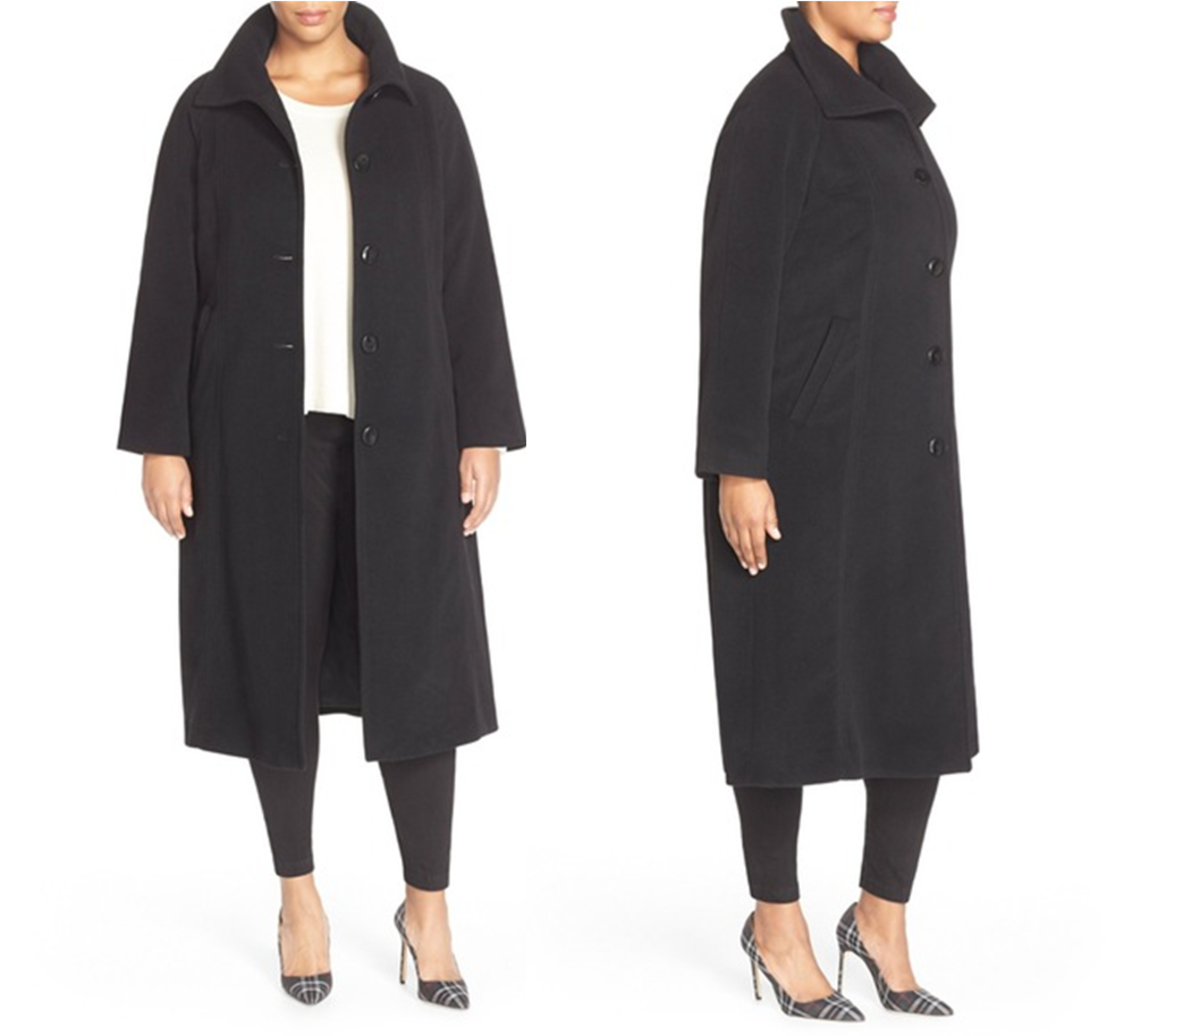 raglan-sleeve coat cut from a wool blend in a longer, A-line silhouette